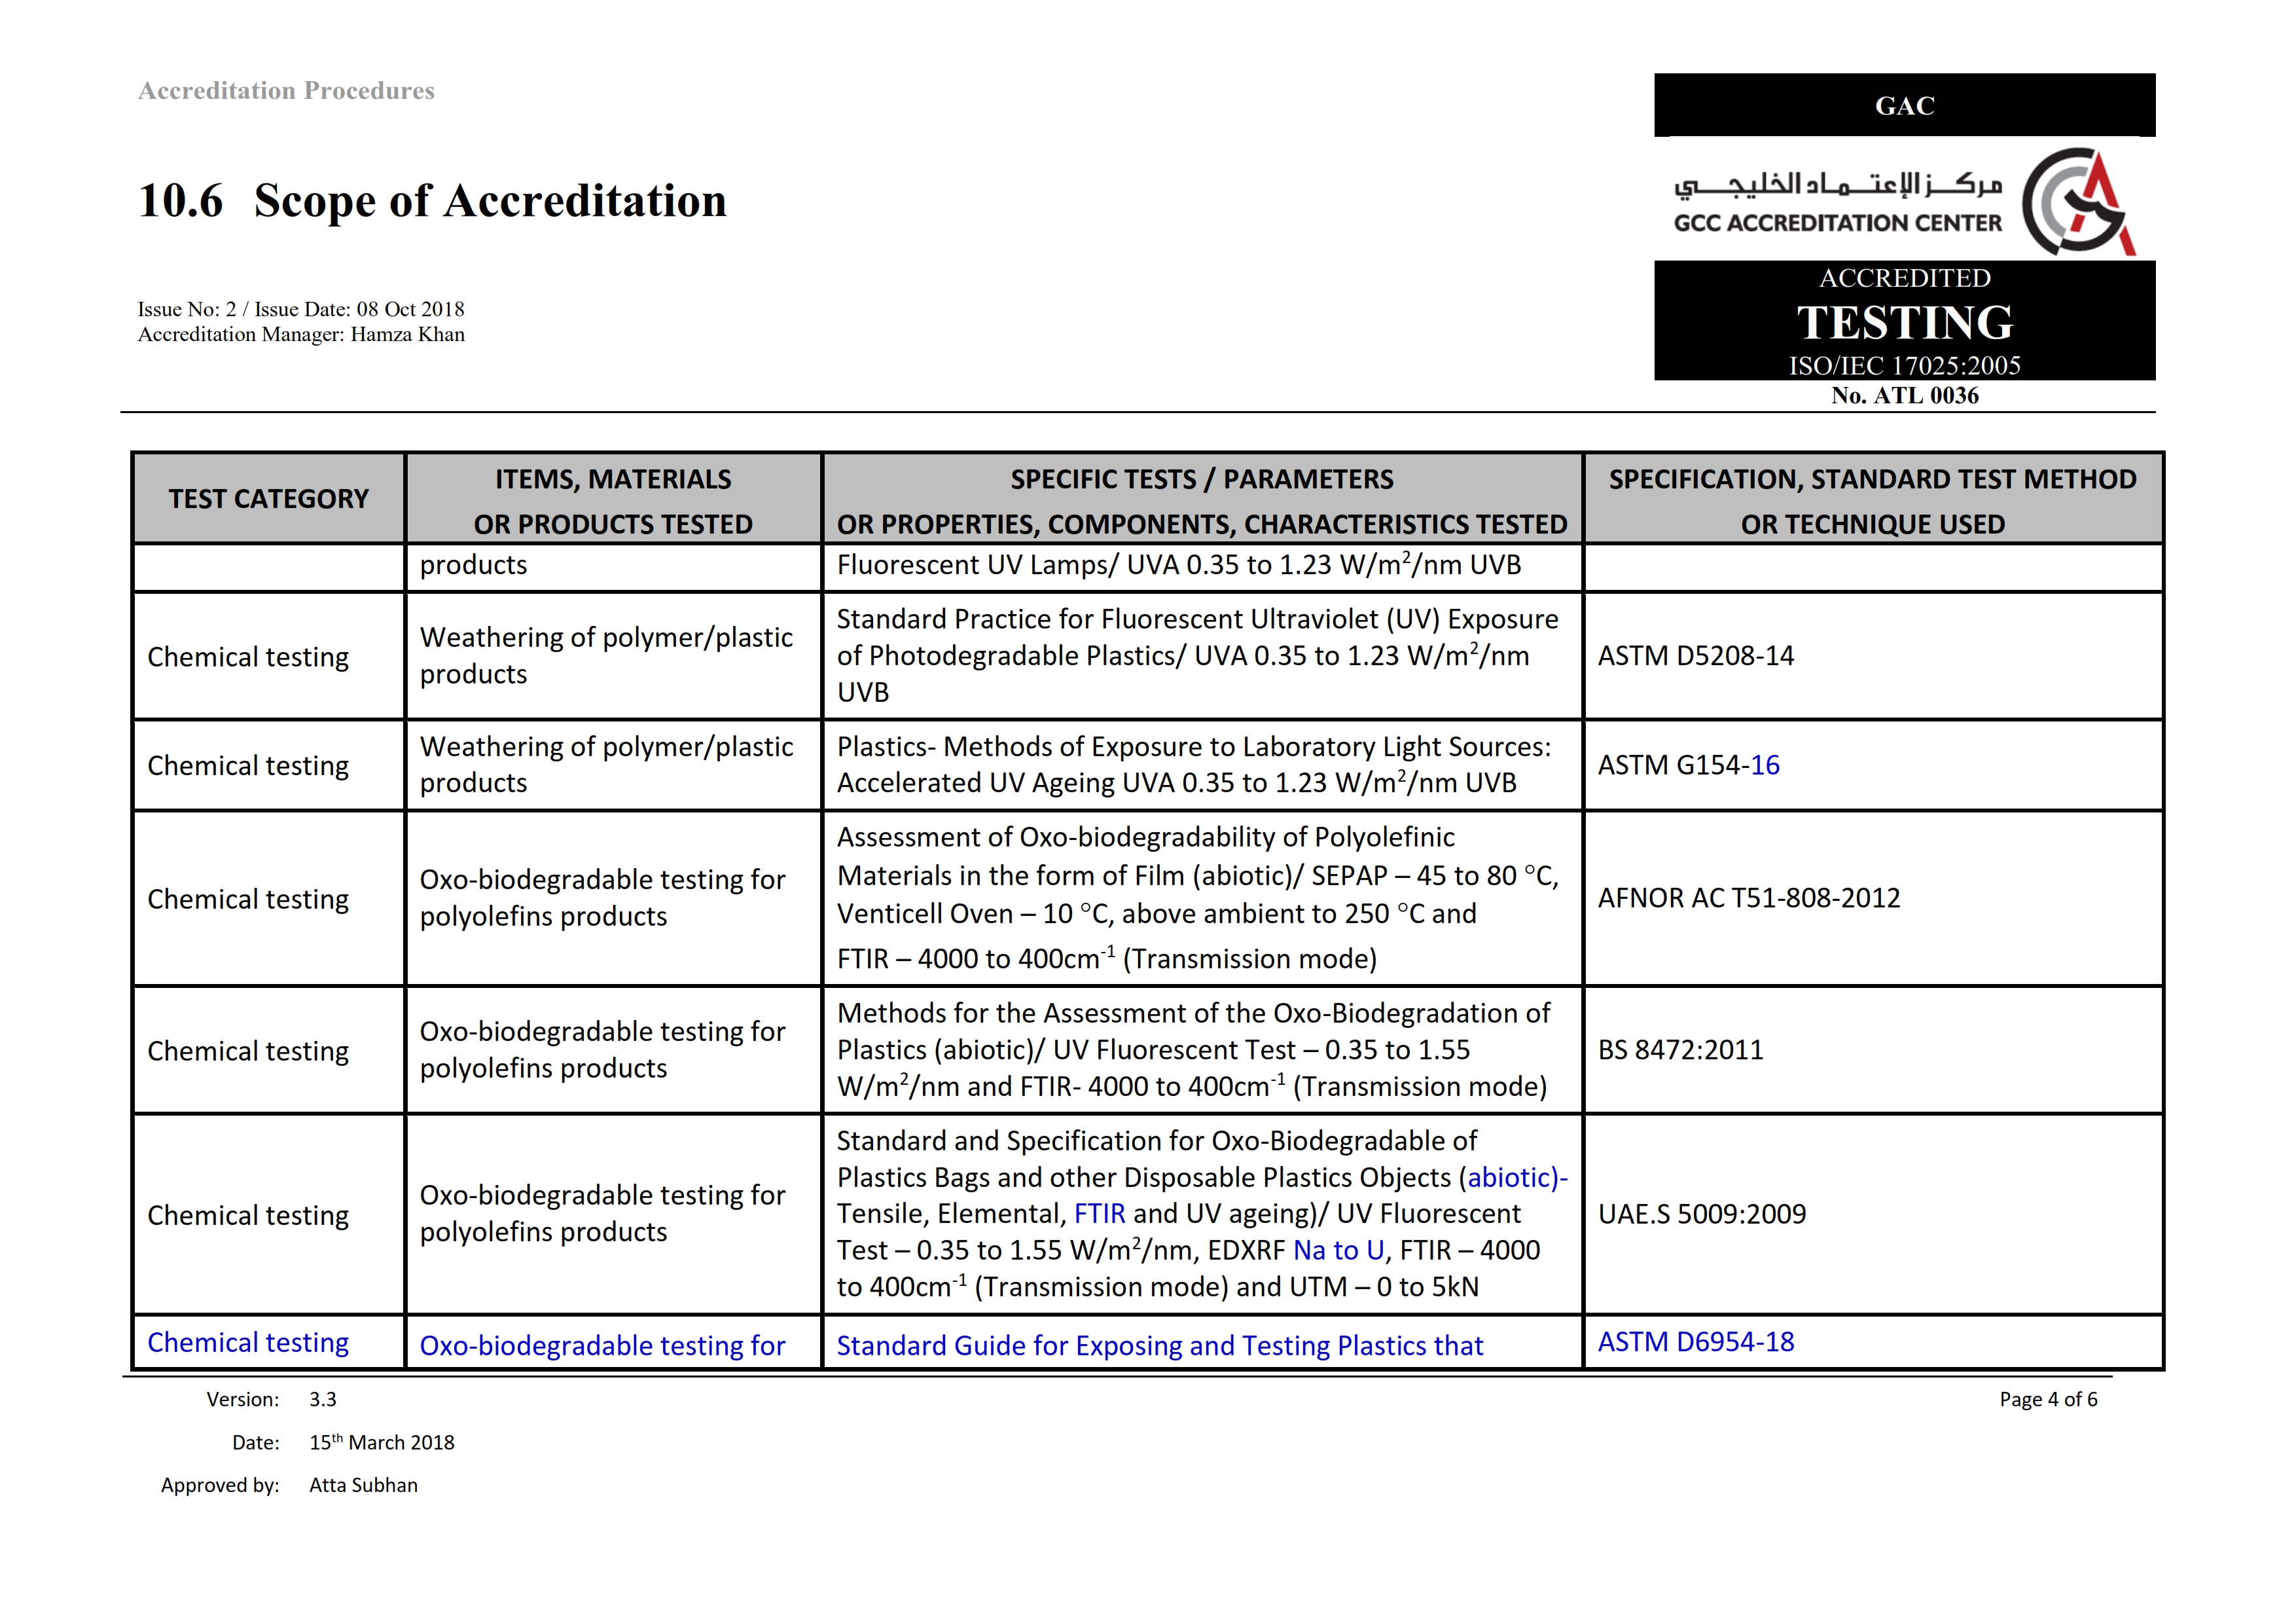 GAC 10.6 Scope of Accreditation- v.3.3 -Testing - EnerPlastic LLC_004